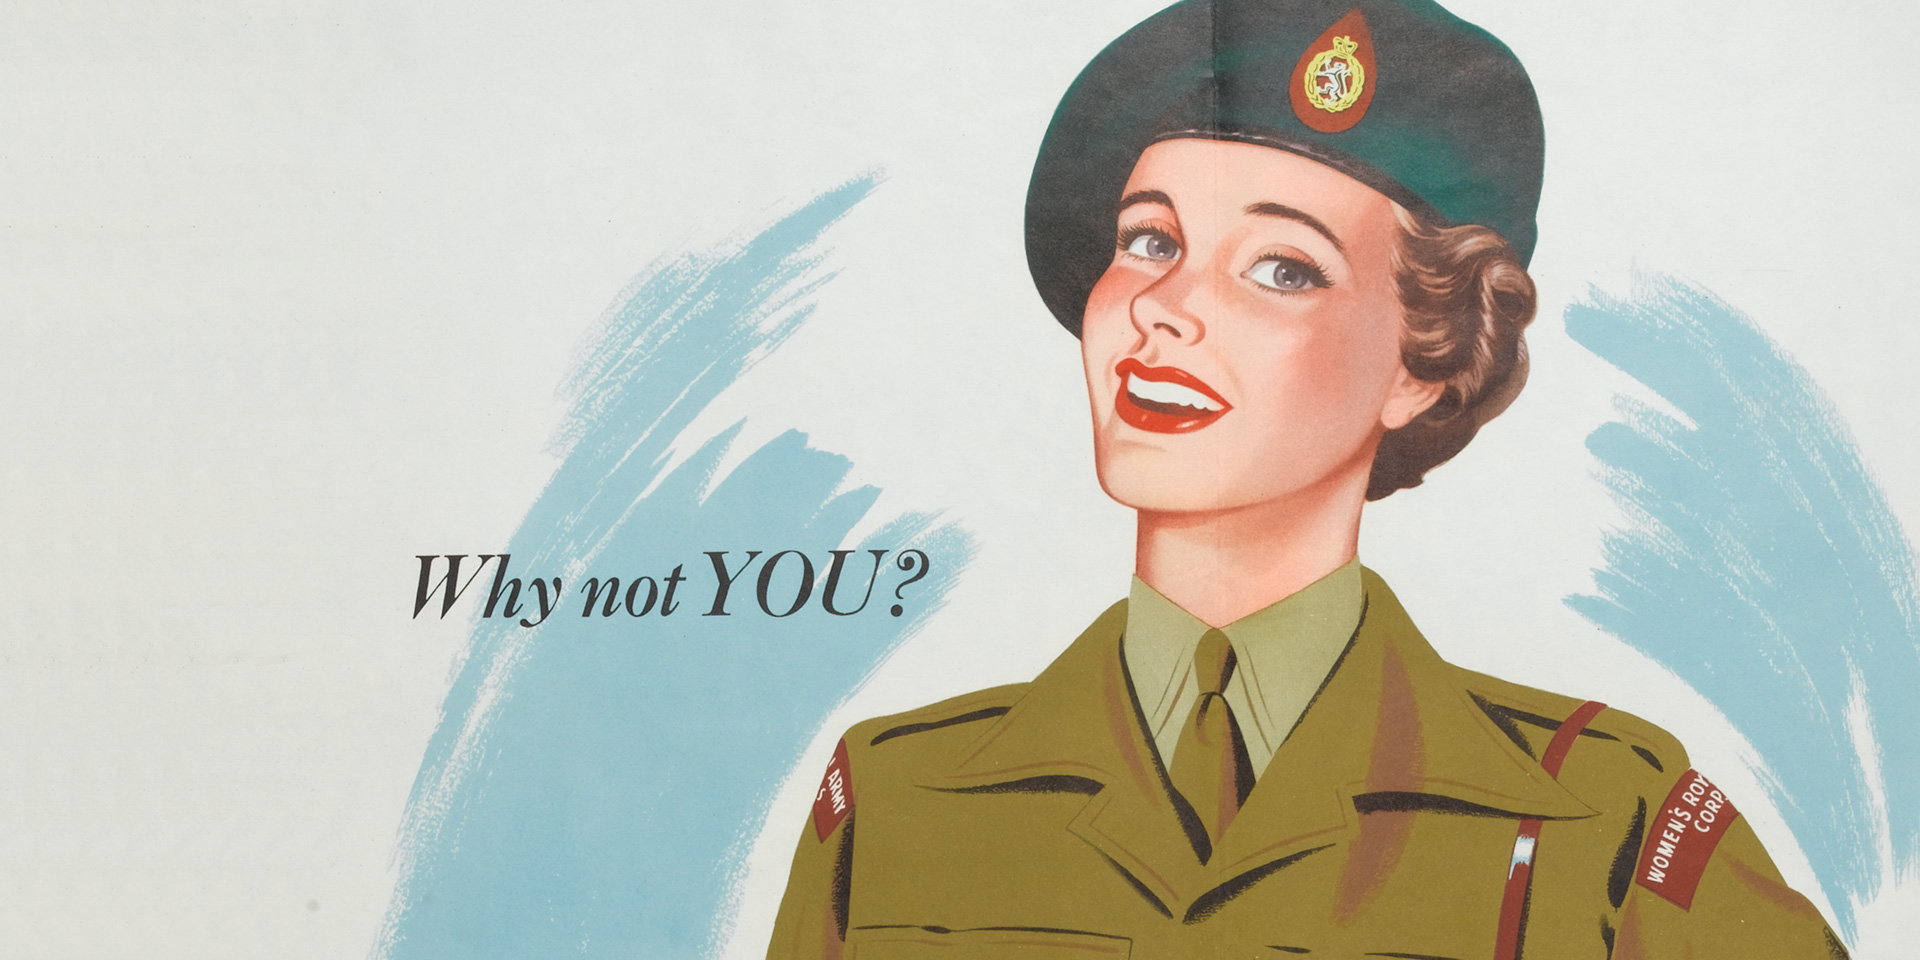 Women's Royal Army Corps recruiting poster, c1950